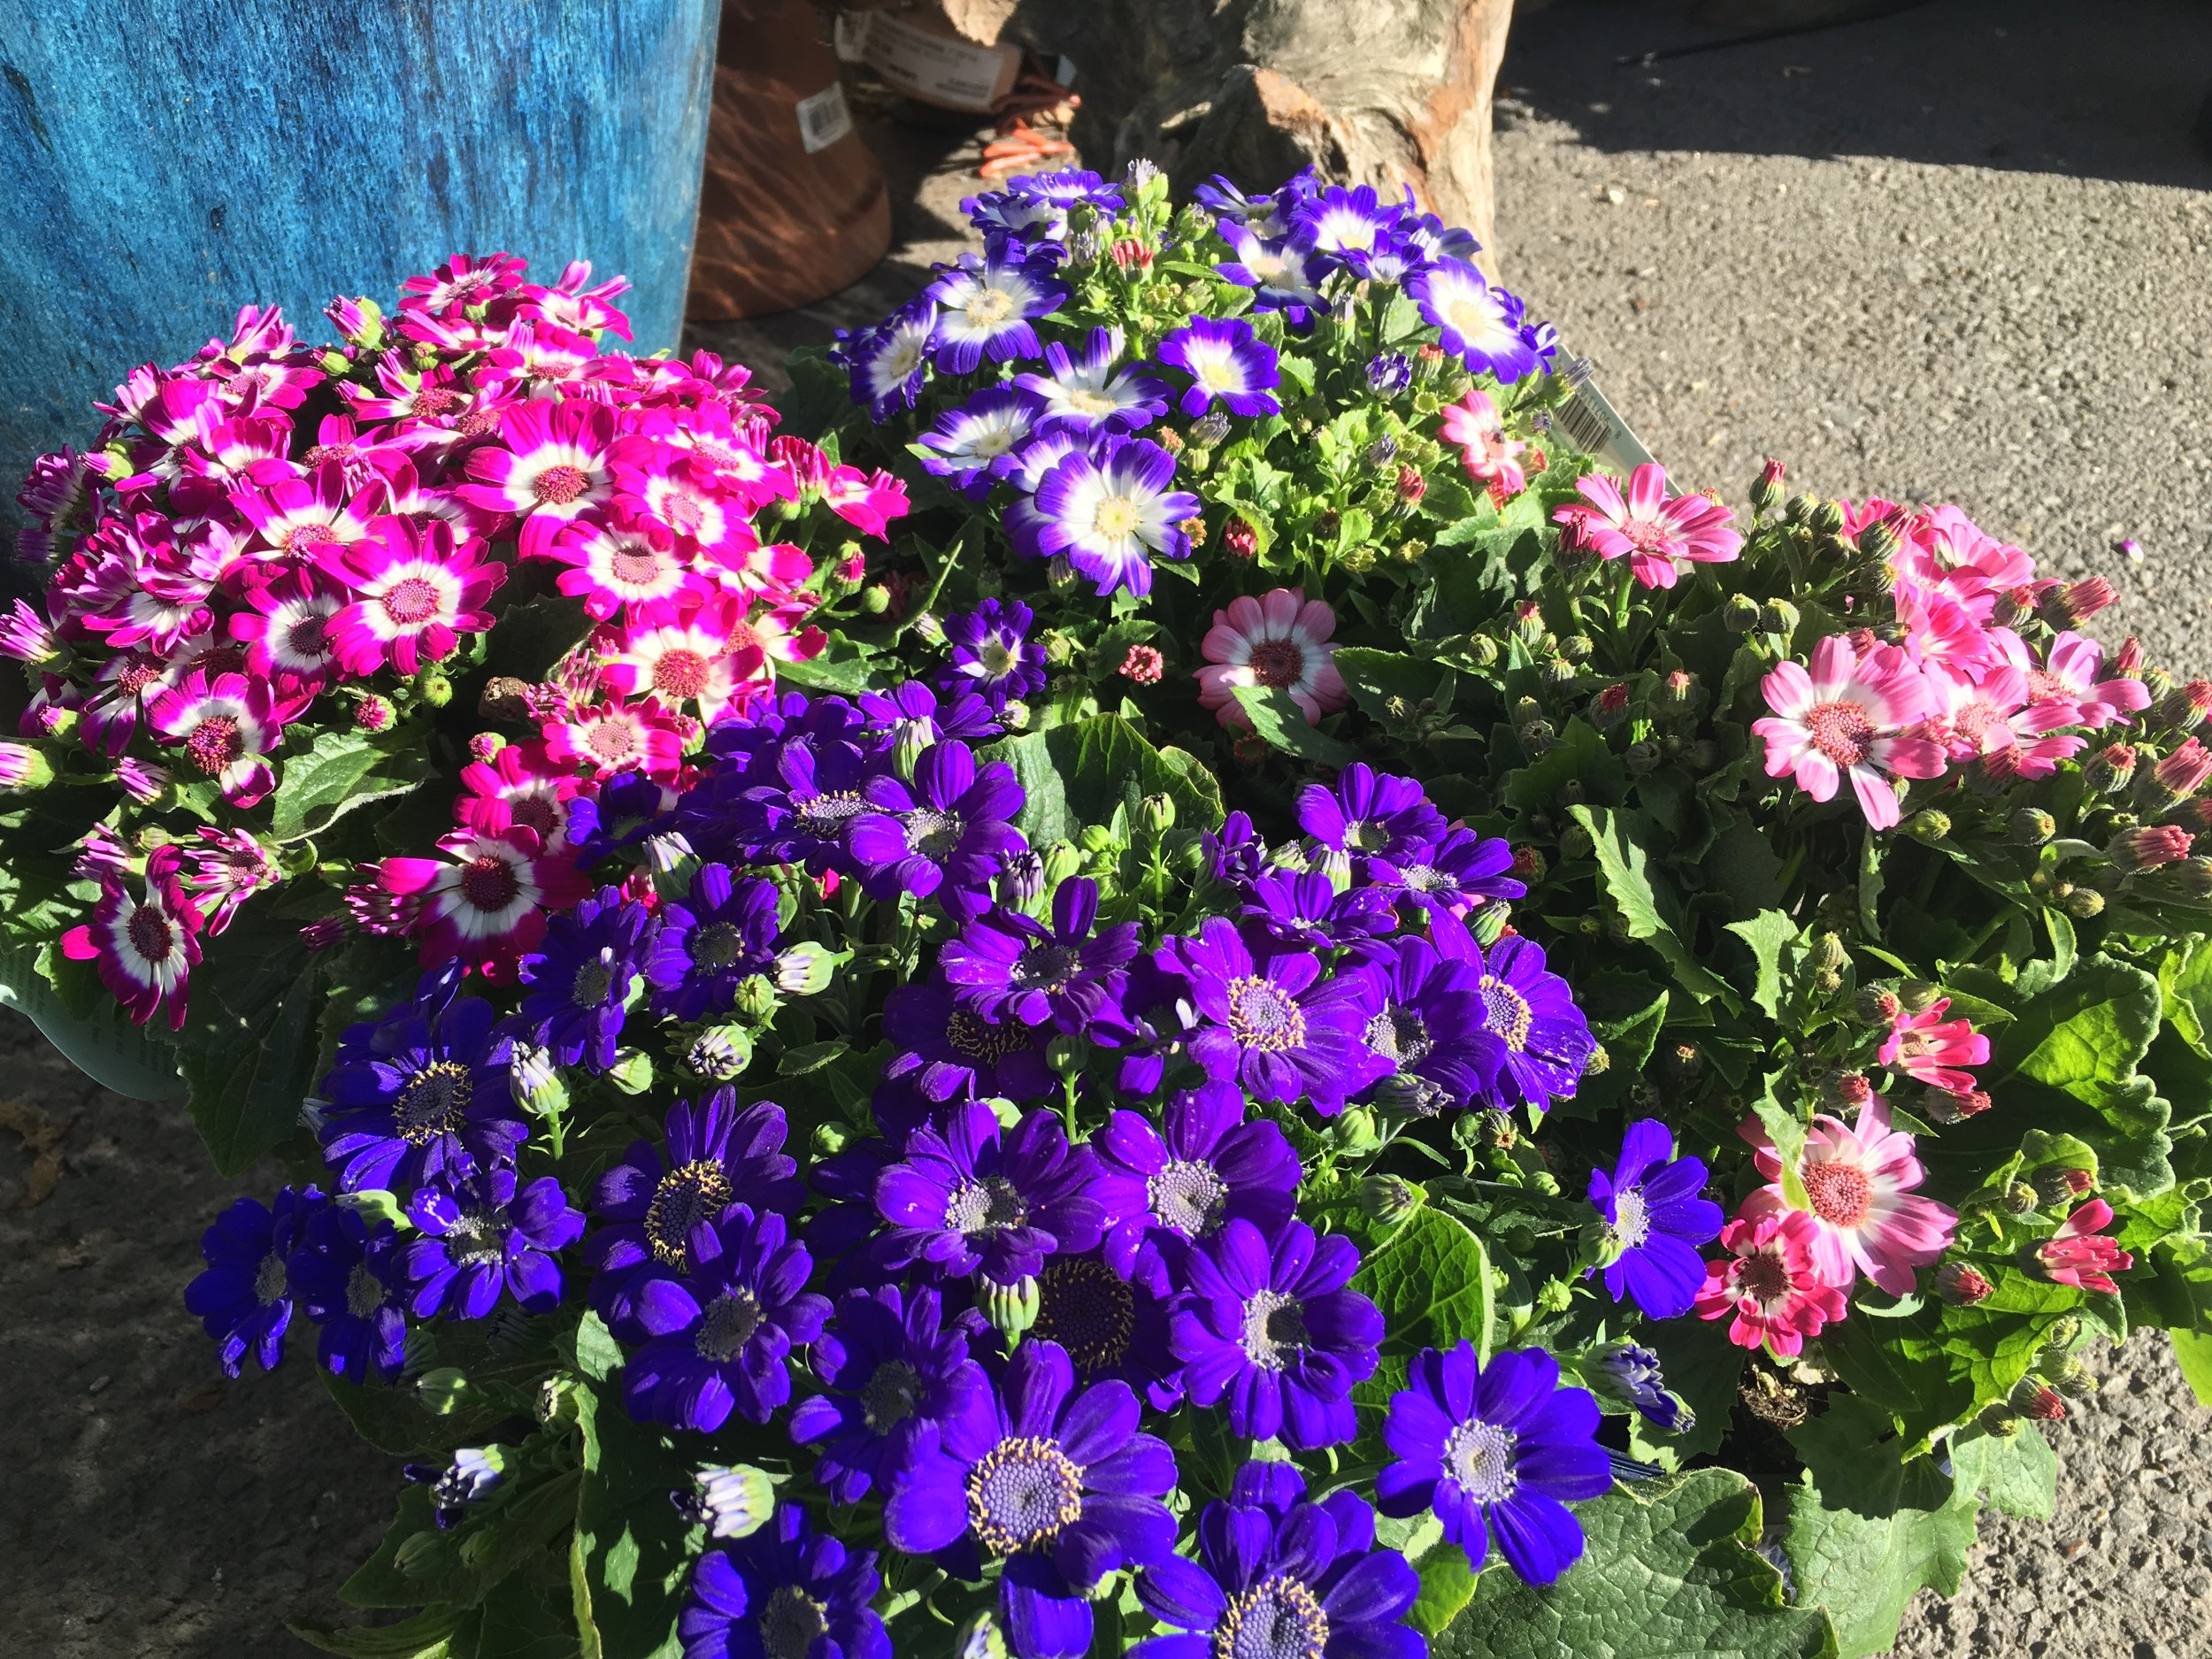 Cineraria blooming in a range of colors that make for an amazing spread...